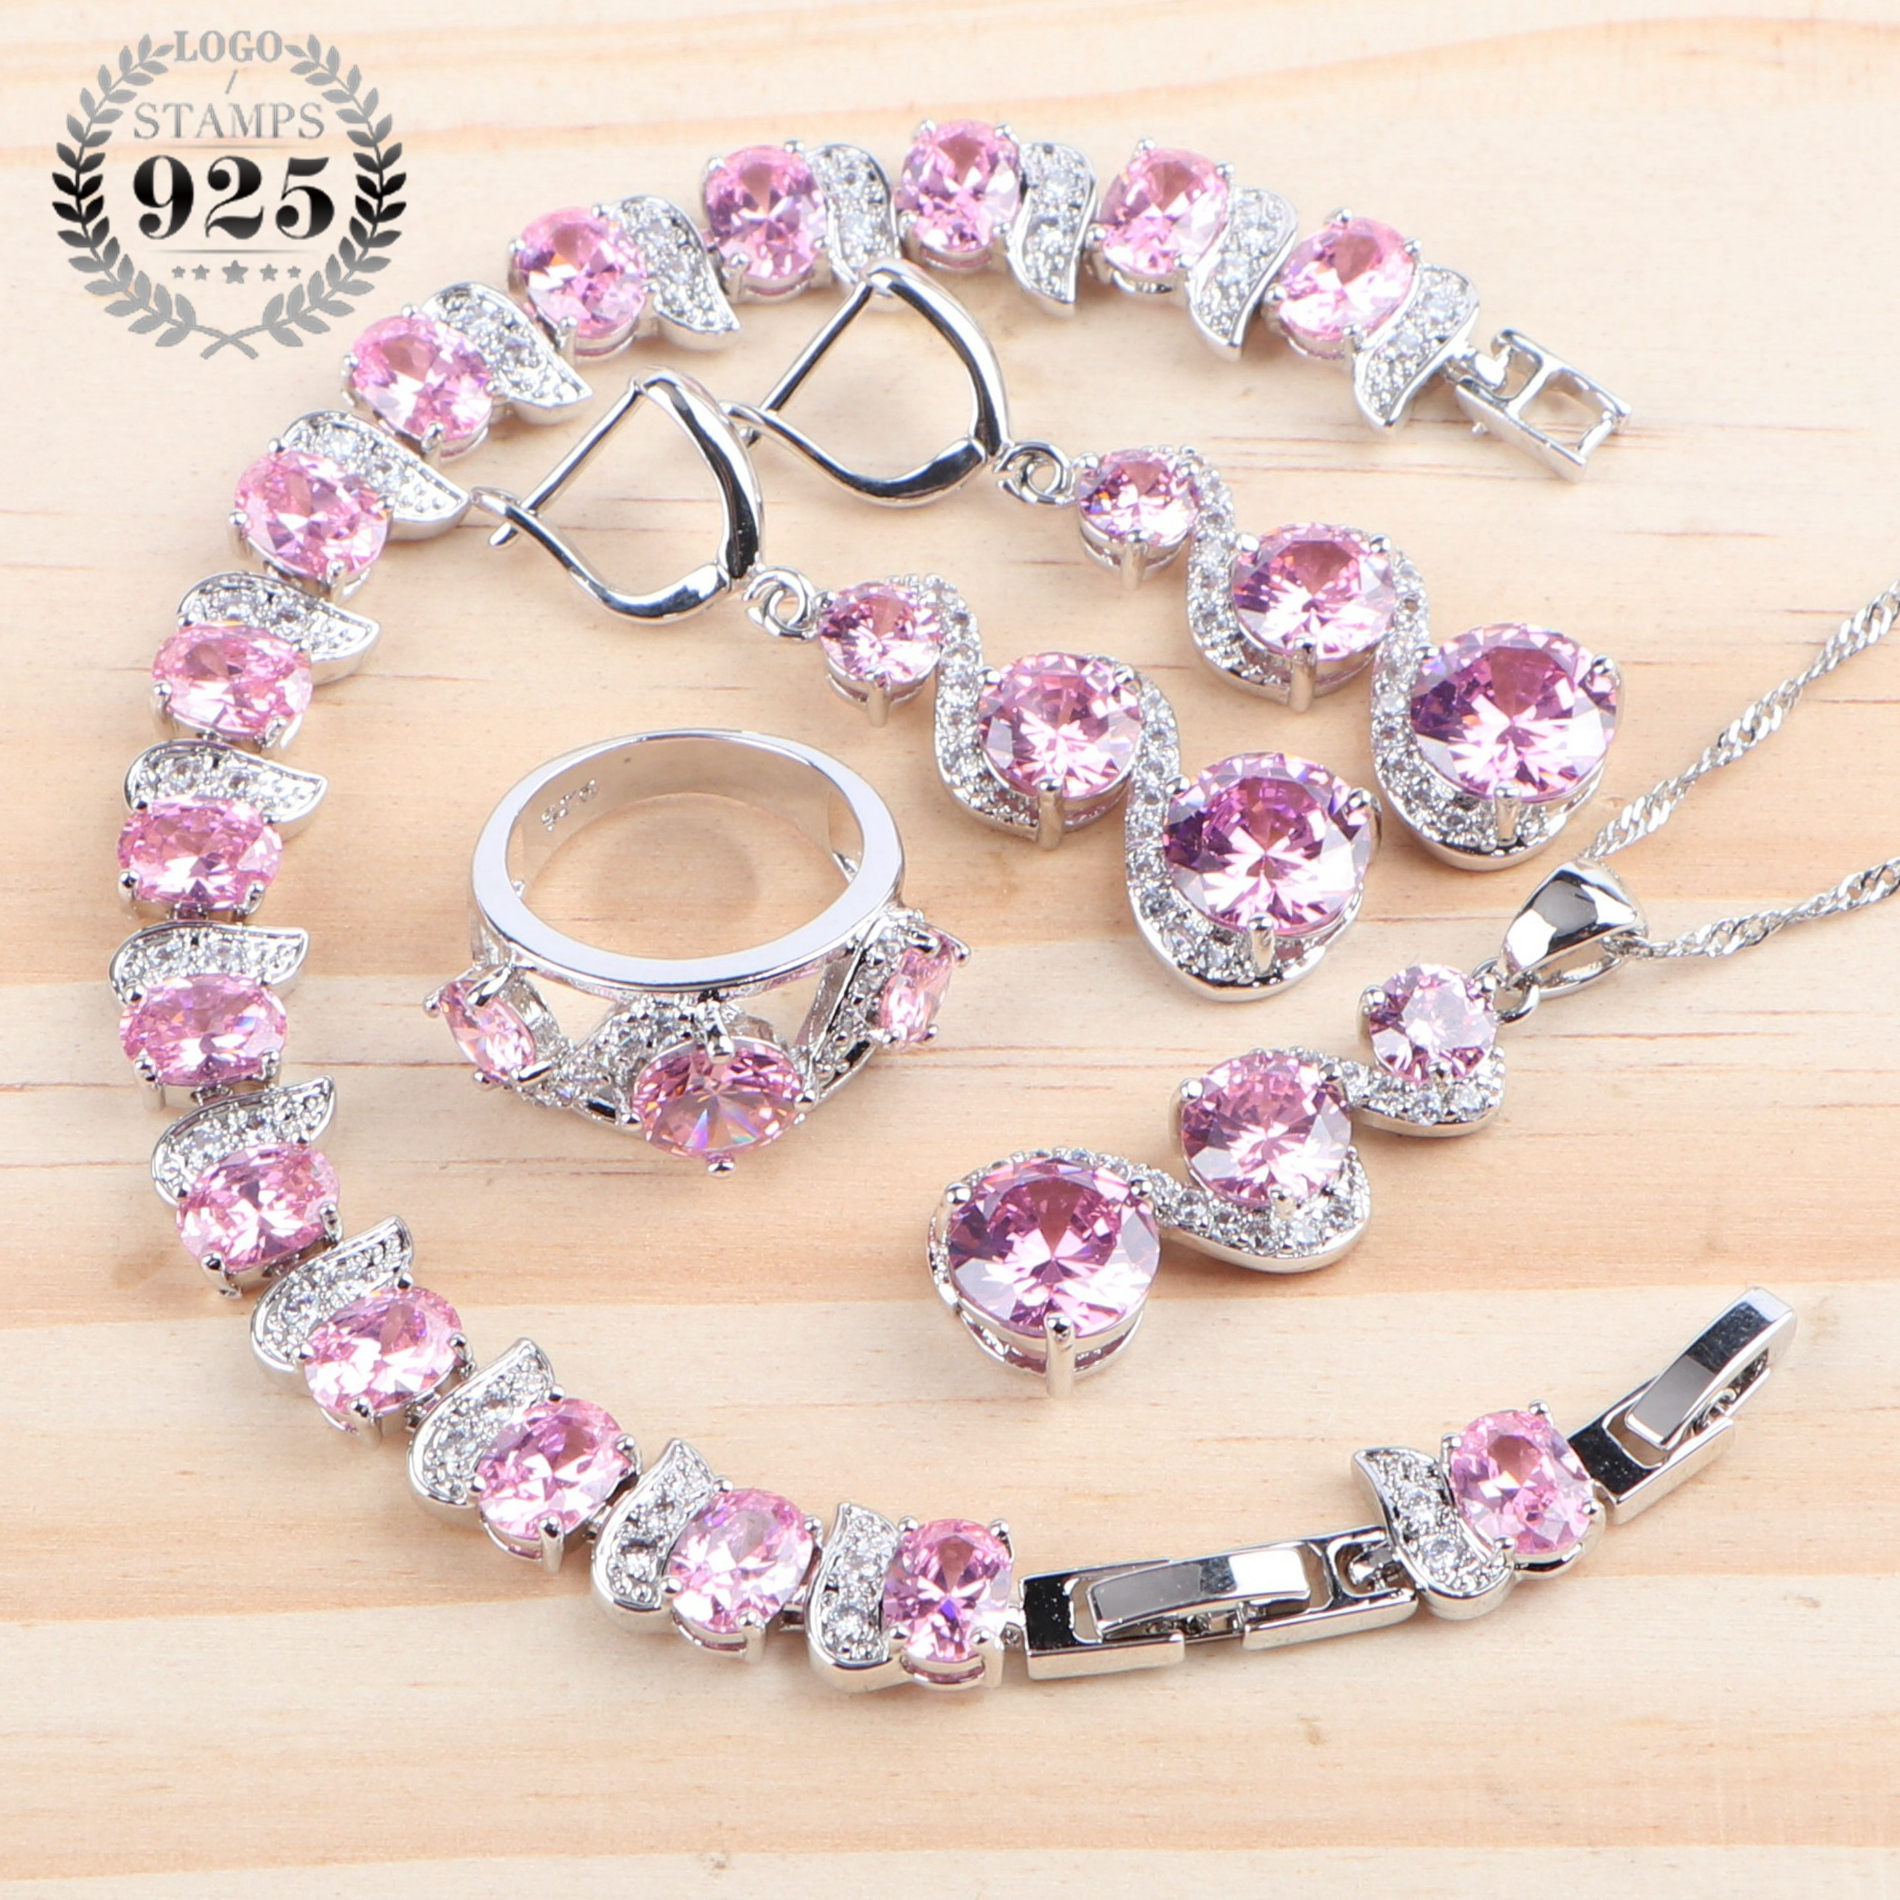 Wedding Bridal Jewelry Sets For Women Costume Pink Cubic Zirconia Silver 925 Necklace Ring Earrings Earrings Bracelet Gift Box